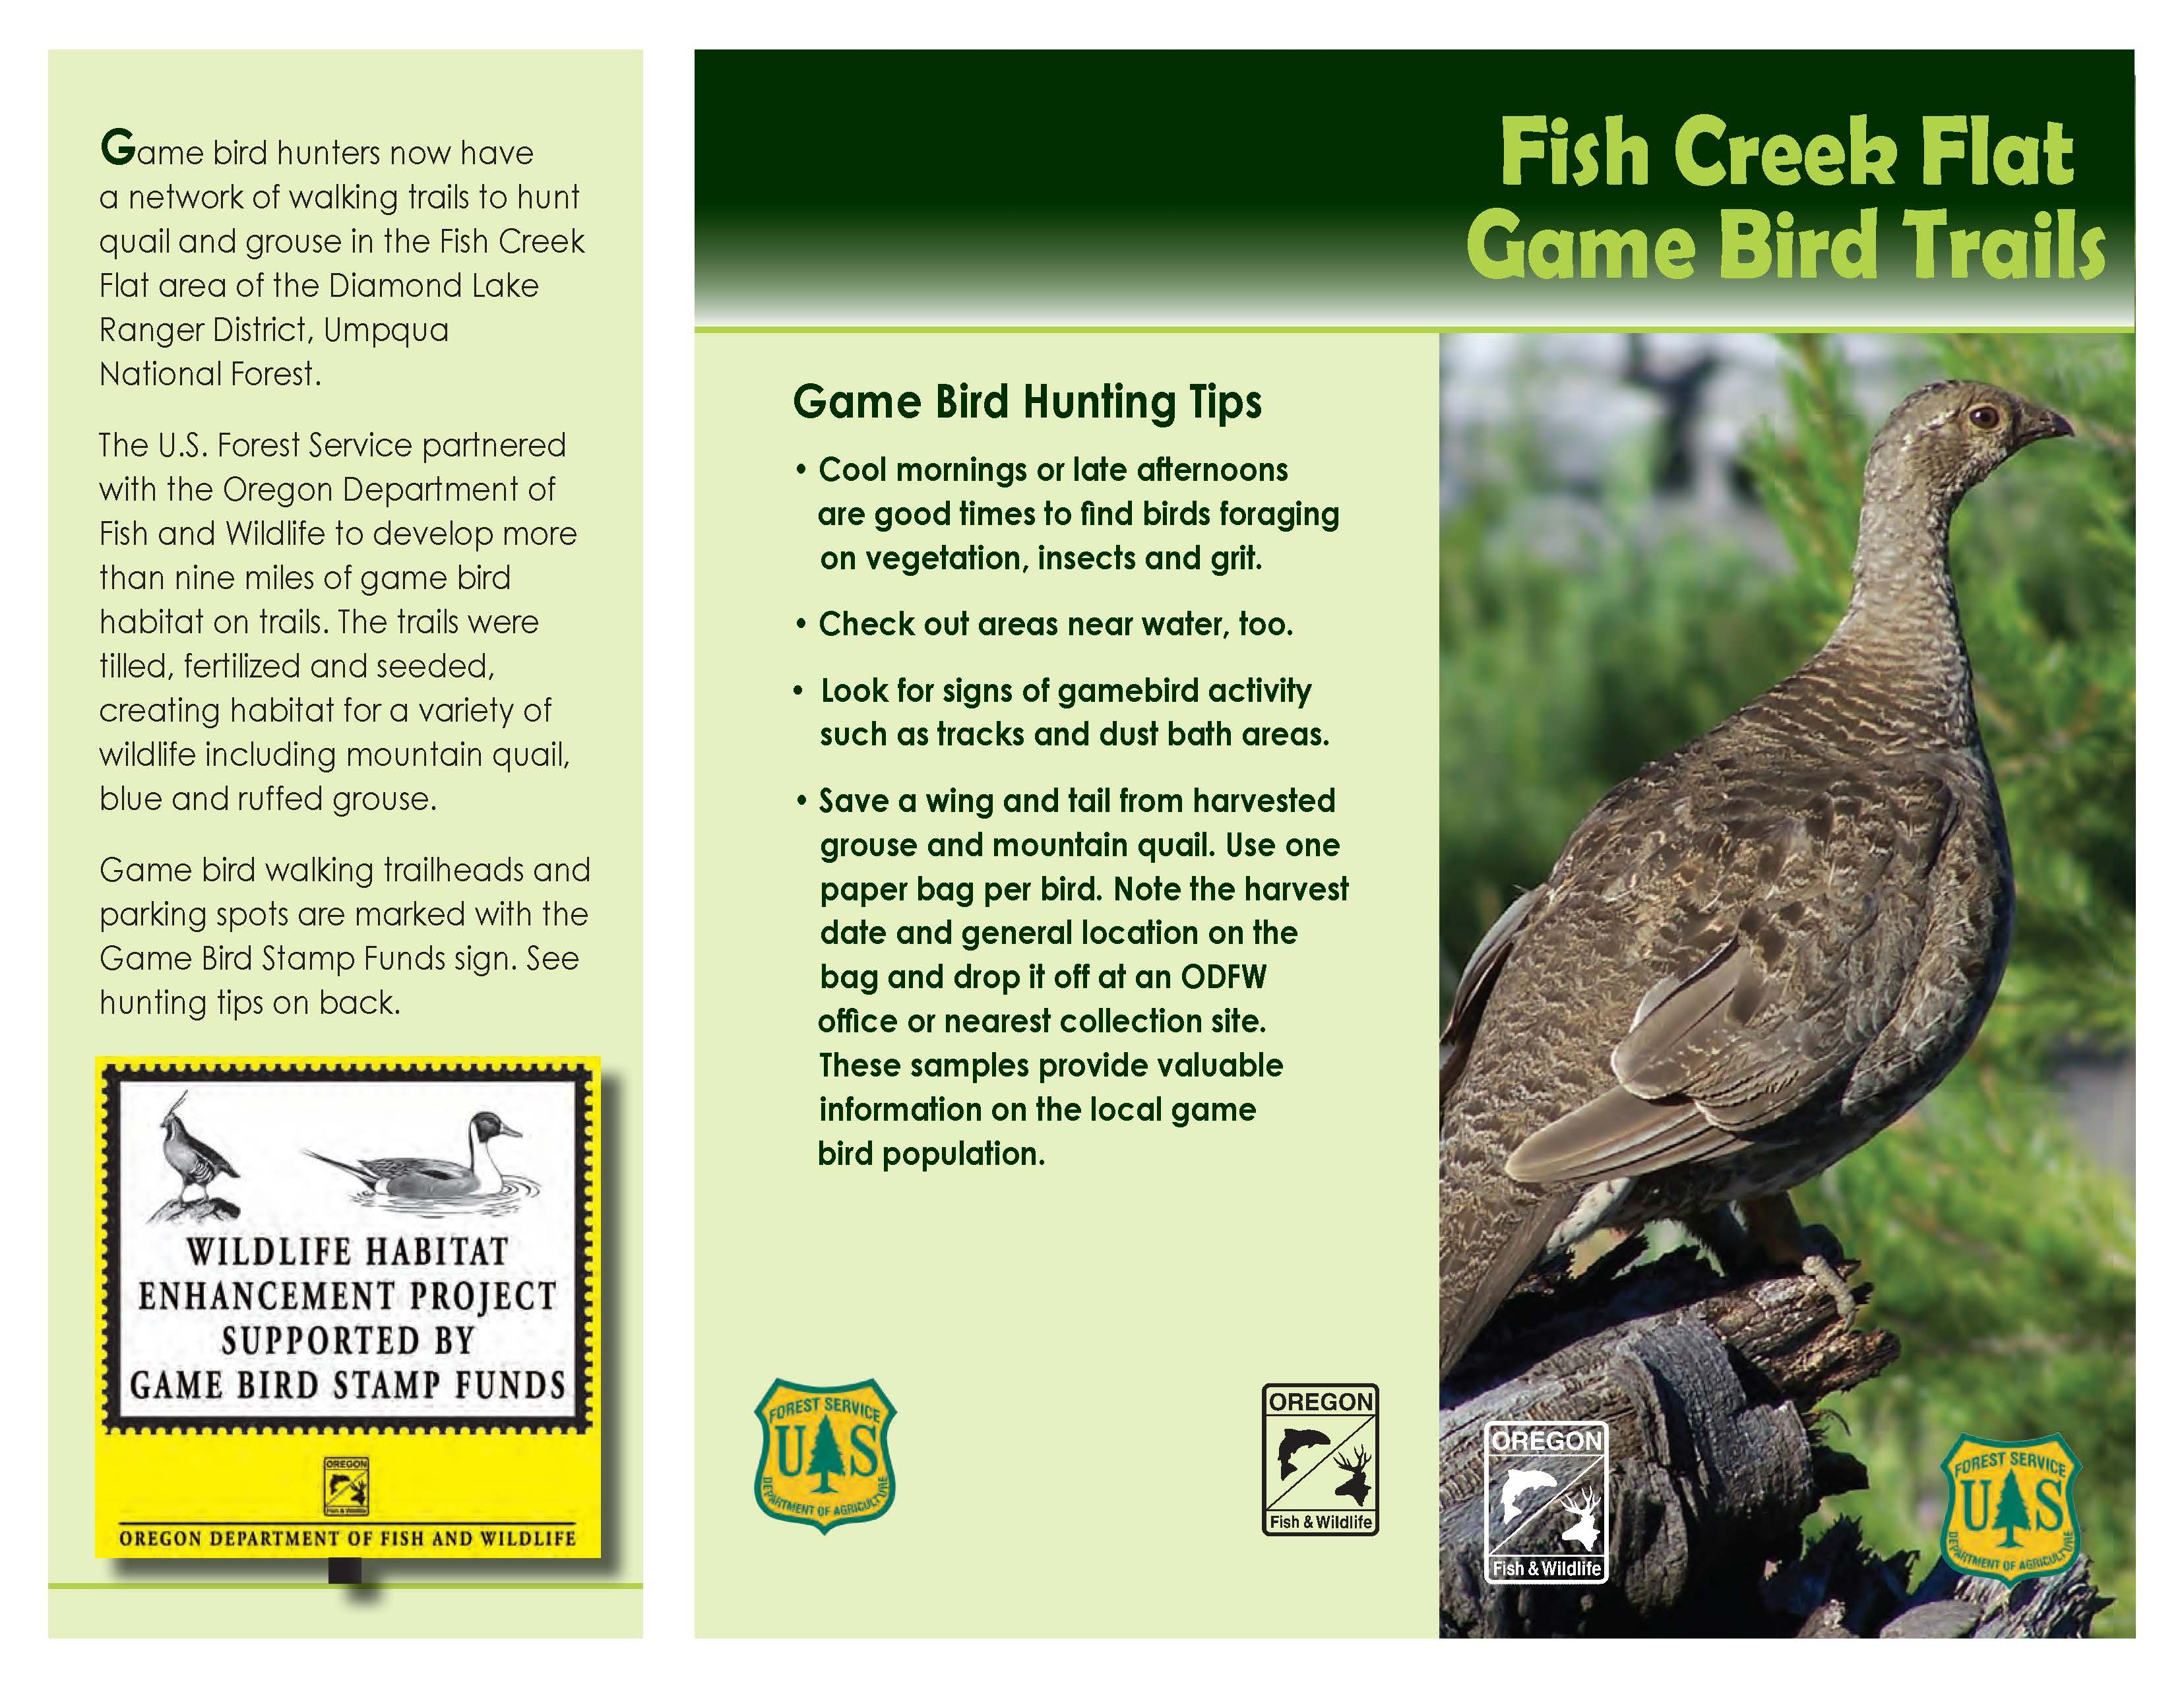 Fish Creek Flat game bird trails, by the Oregon Department